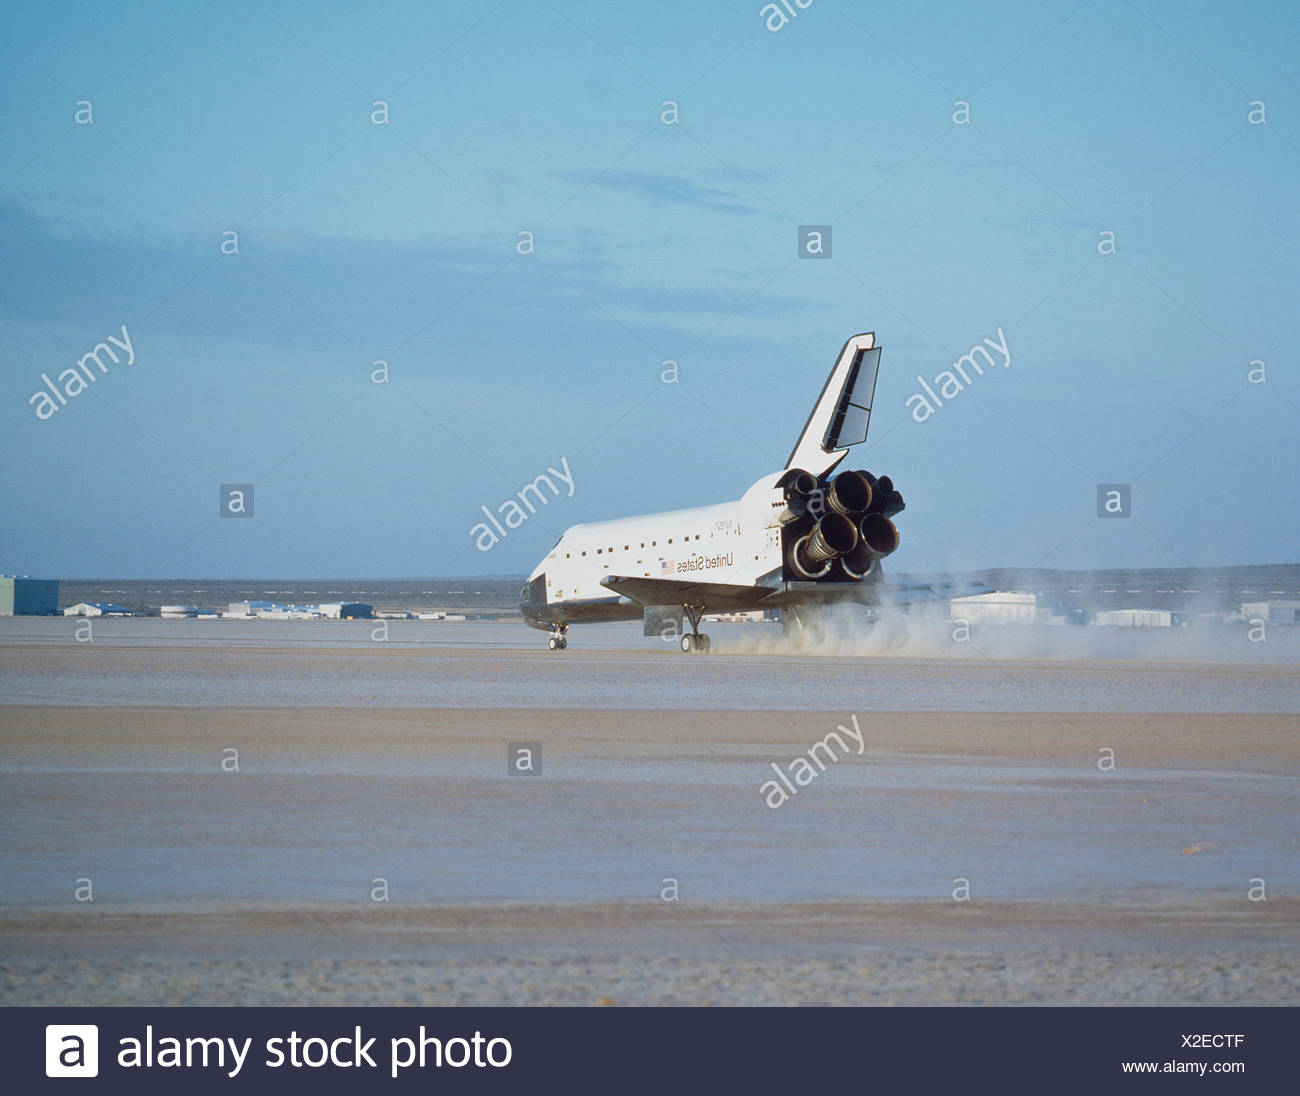 space shuttle landing at edwards air force base - photo #40